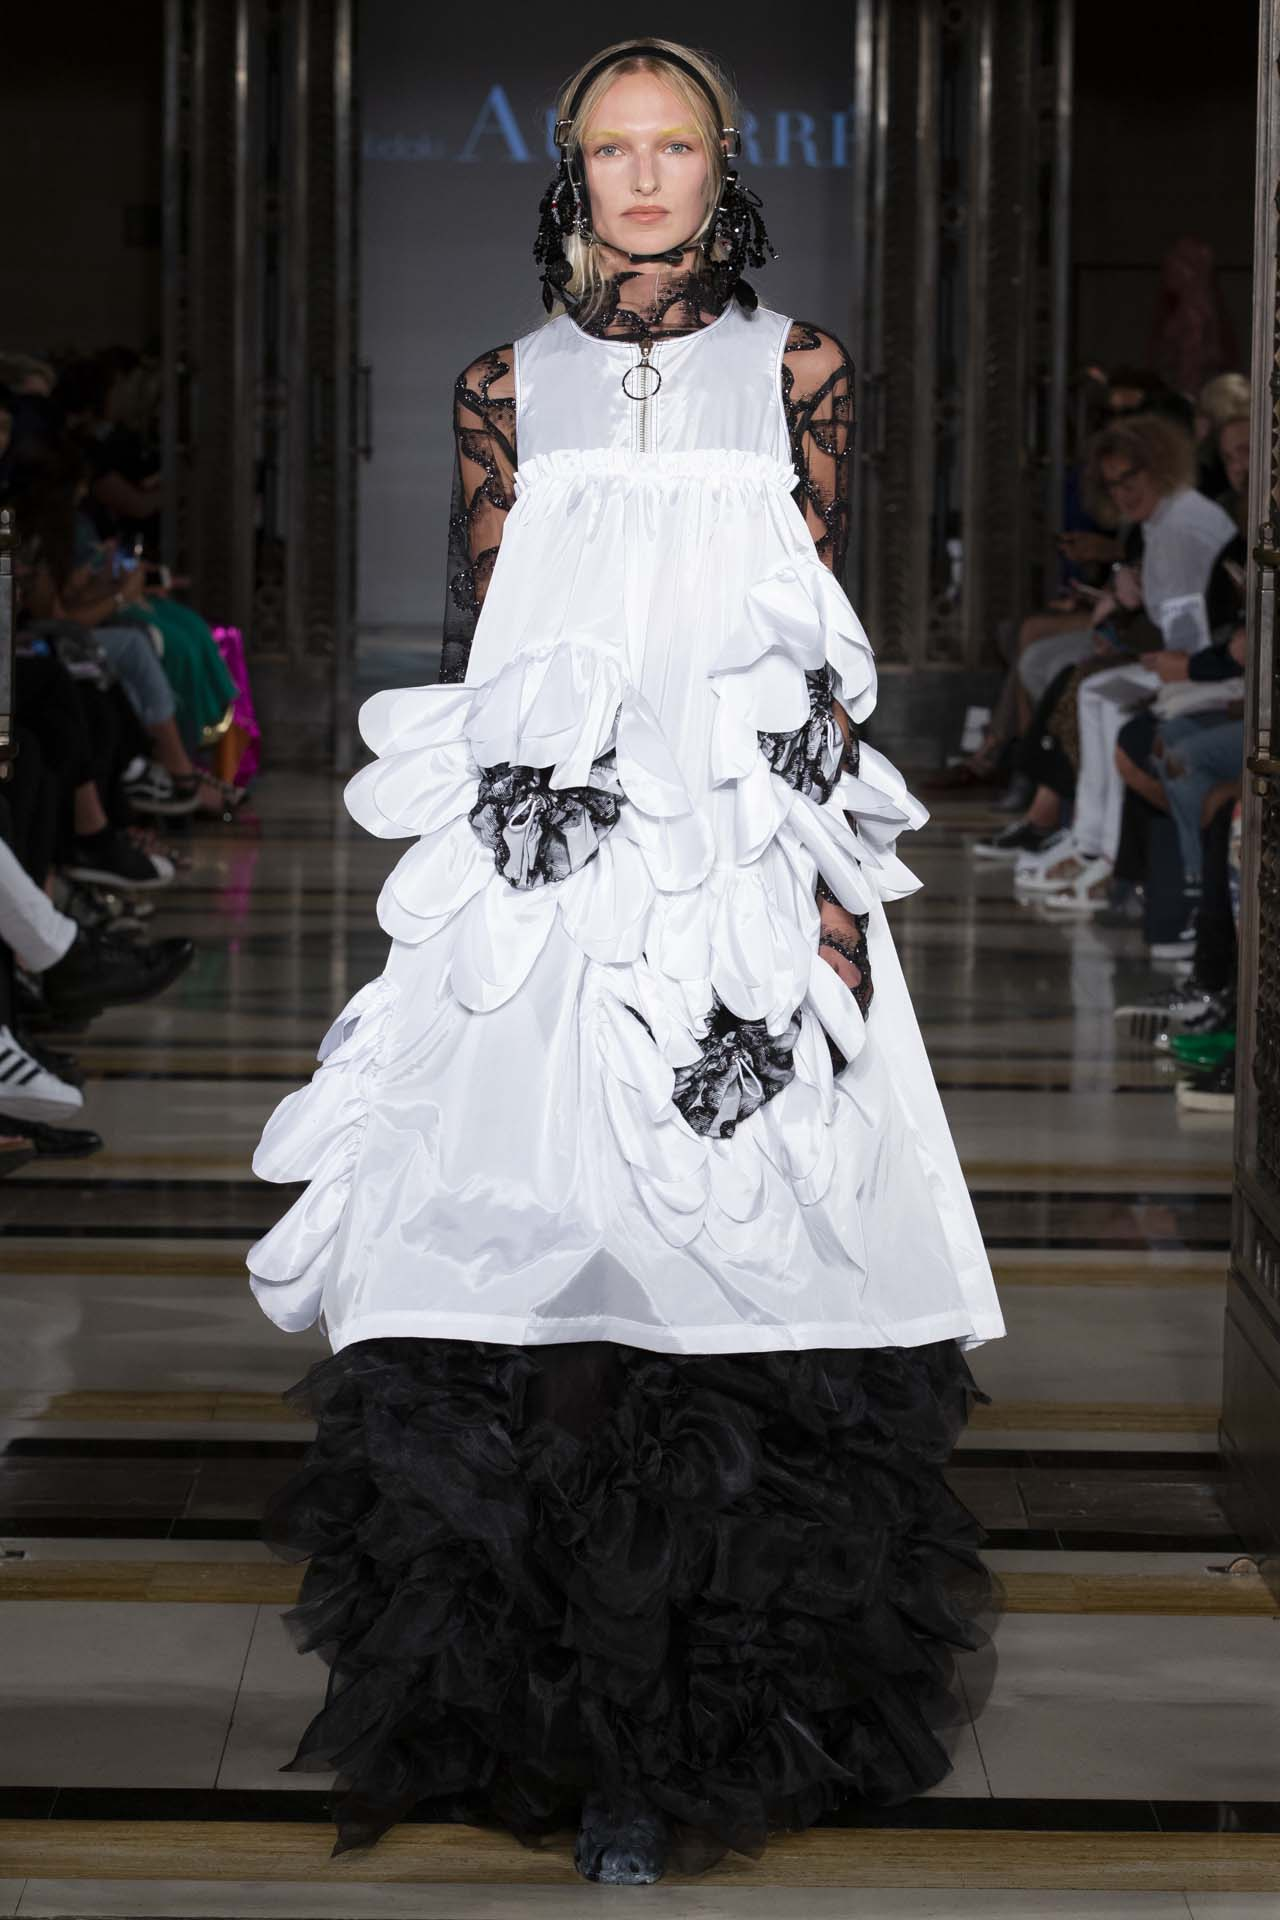 Fashion scout ss19 ones to watch aucarre (12)